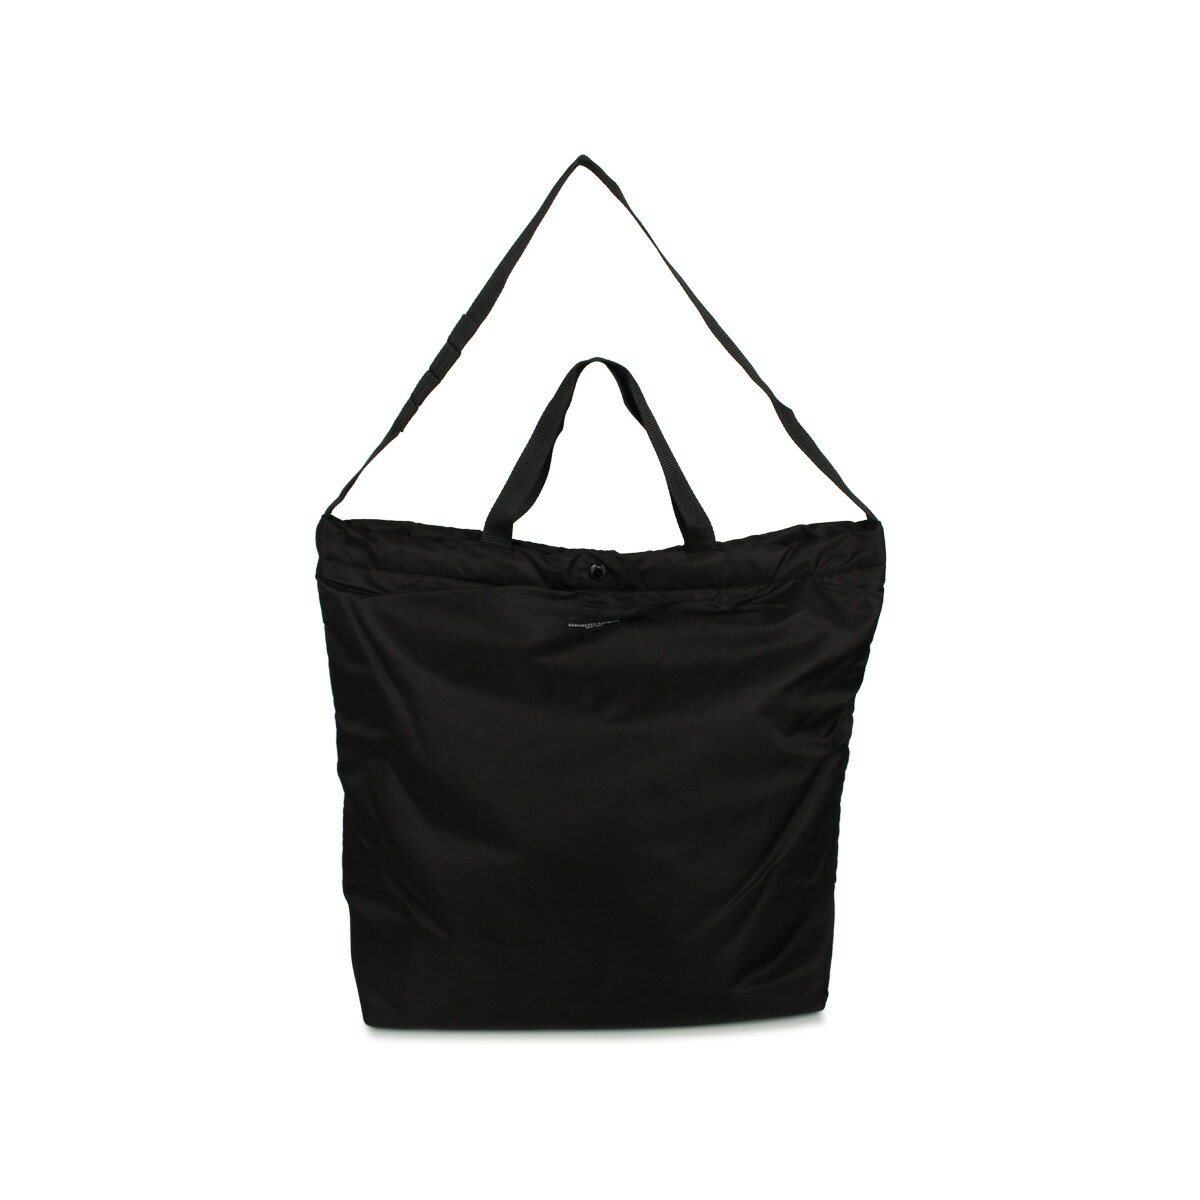 男女兼用バッグ, トートバッグ 1000OFF ENGINEERED GARMENTS CARRY ALL TOTE 2WAY 20F1H015